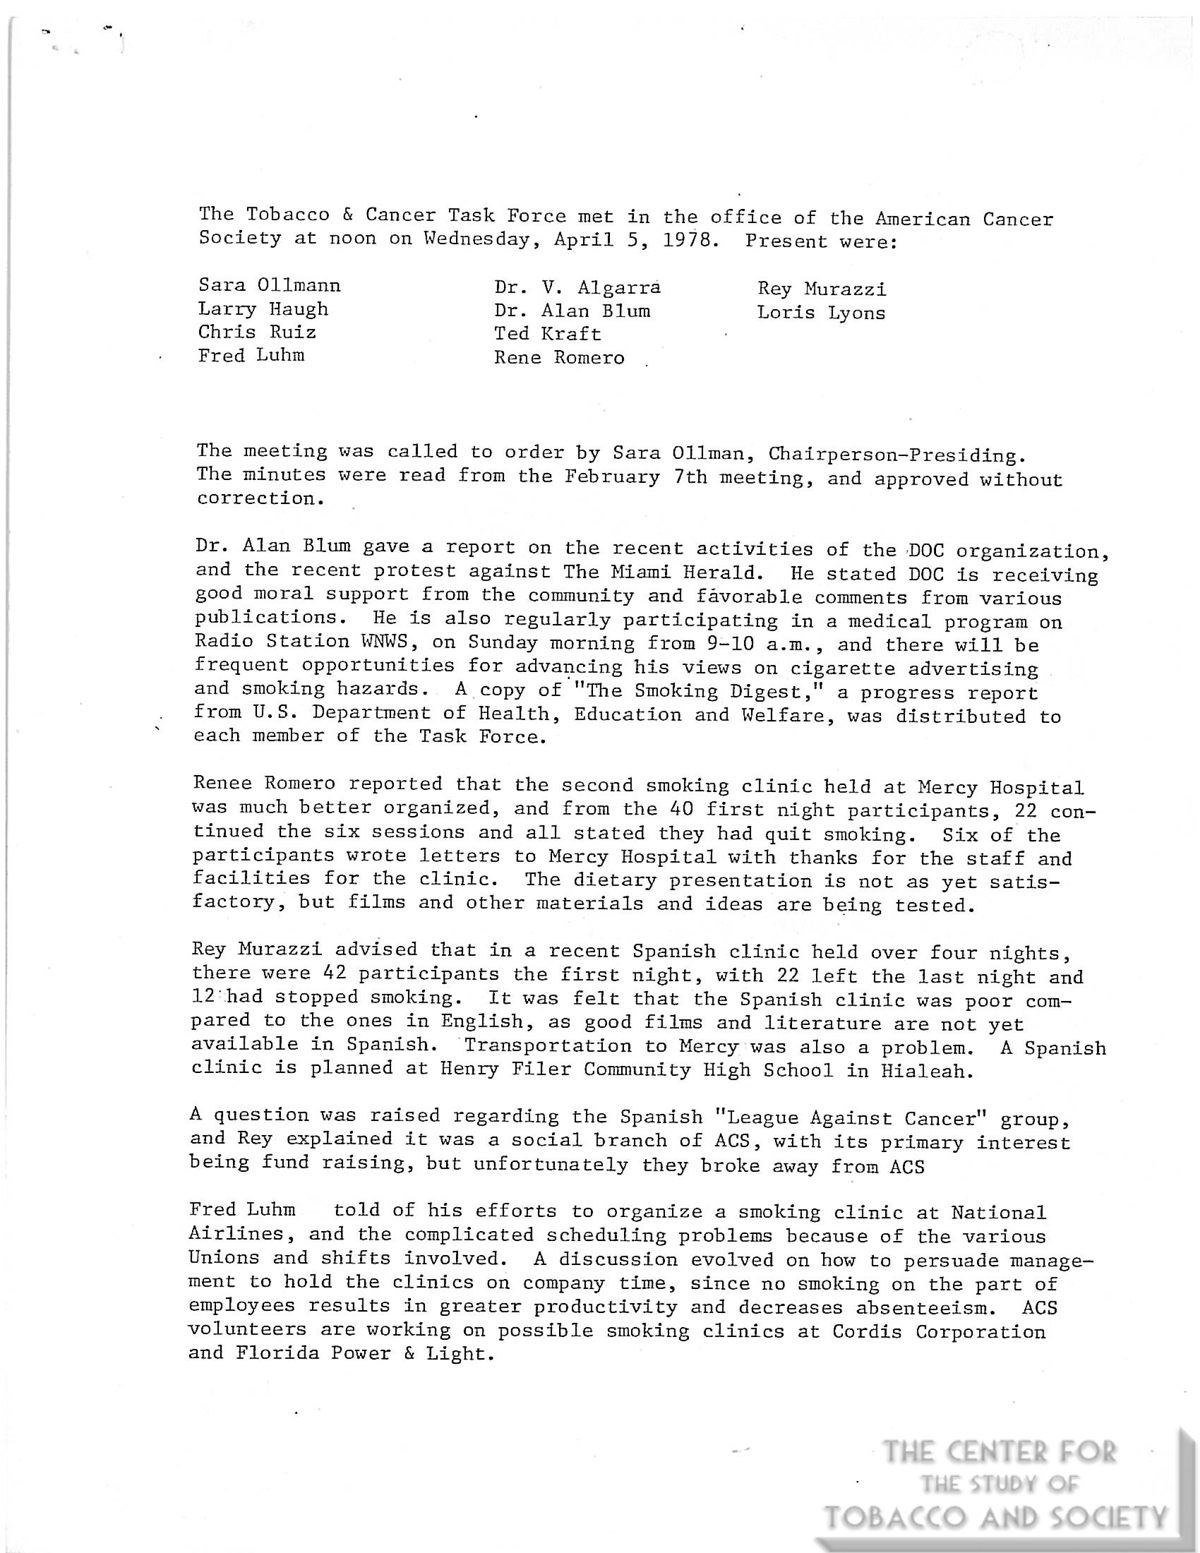 1978 Tobacco Cancer Task Force Meeting Minutes